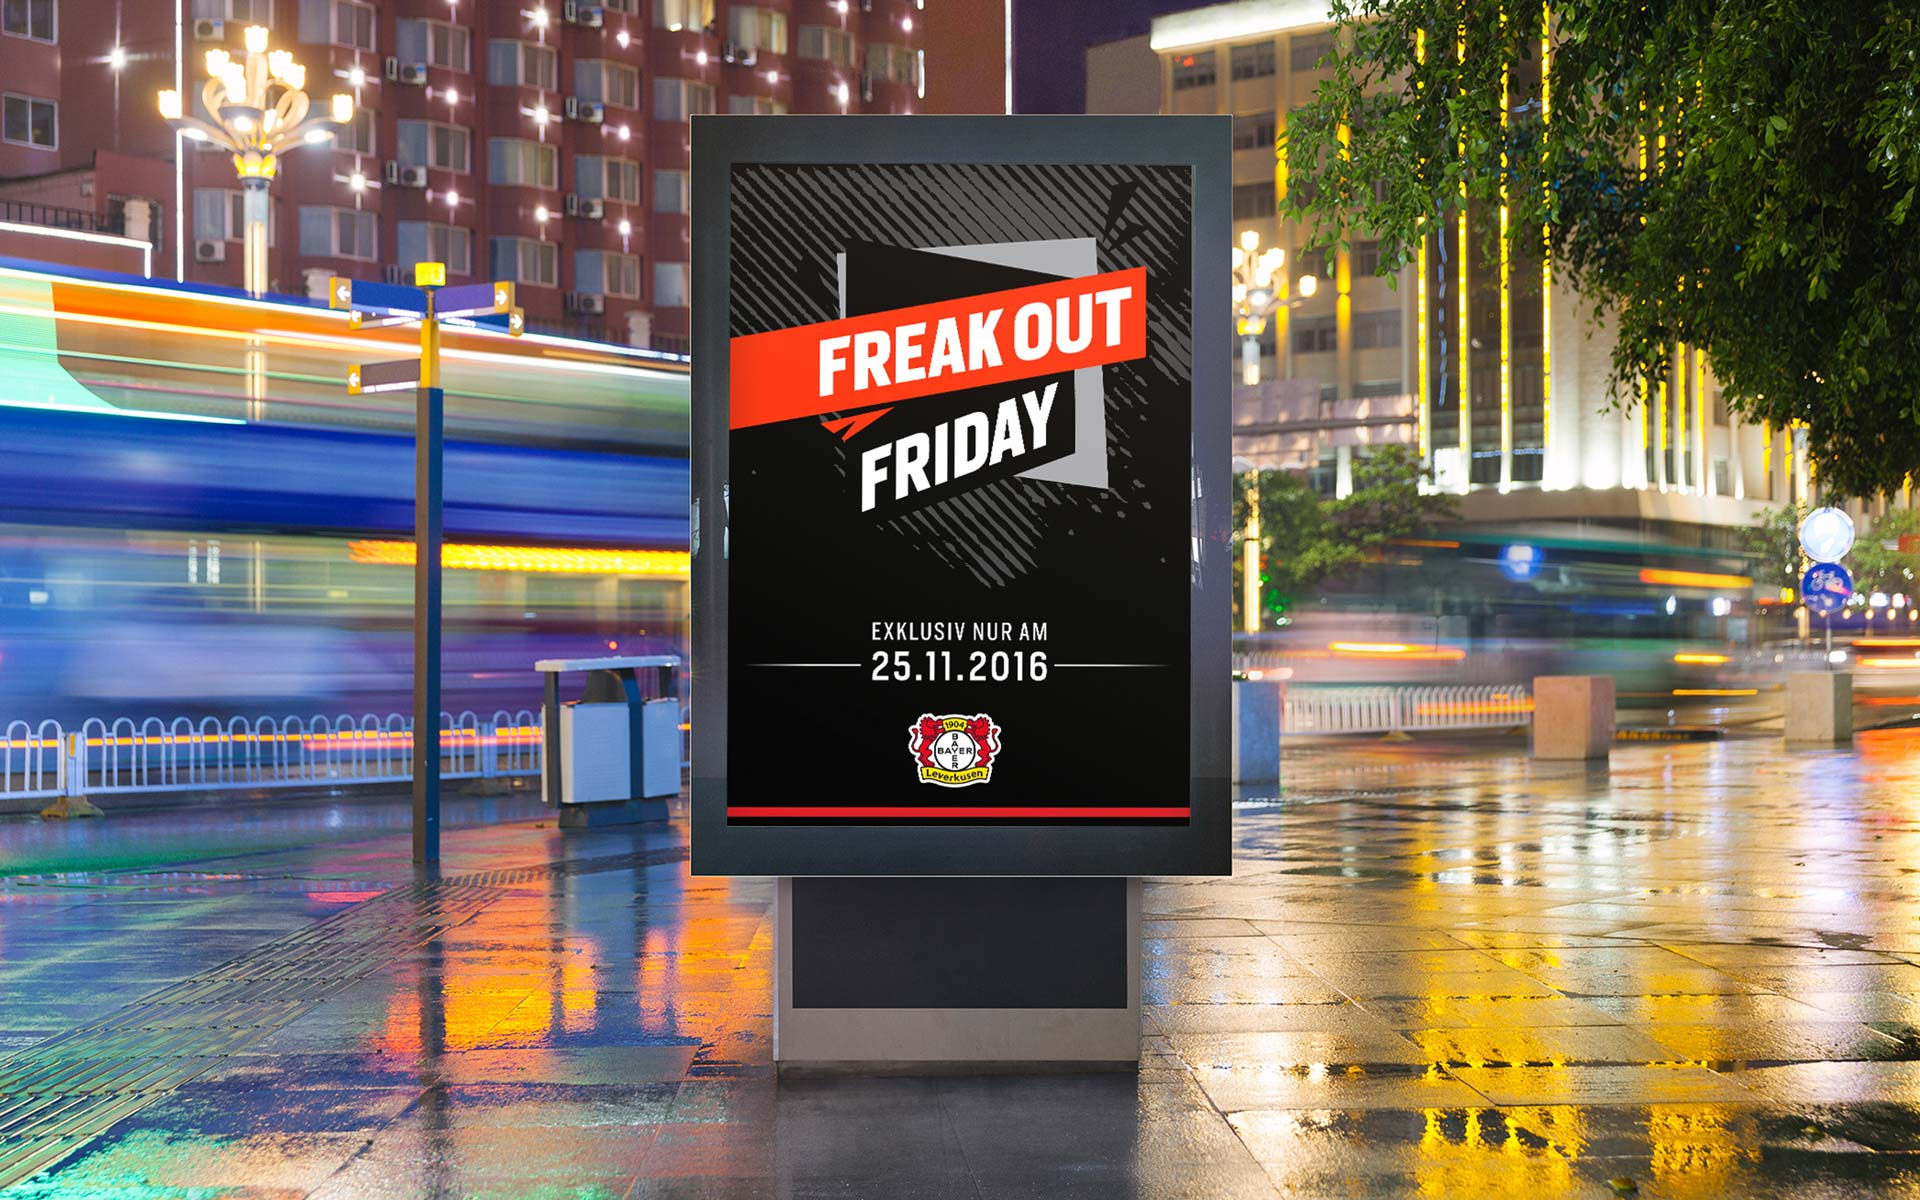 "Saleskampagne ""Freakout Friday"", Bayer 04 Leverkusen, Markenkommunikation, Corporate Design, Citylight"